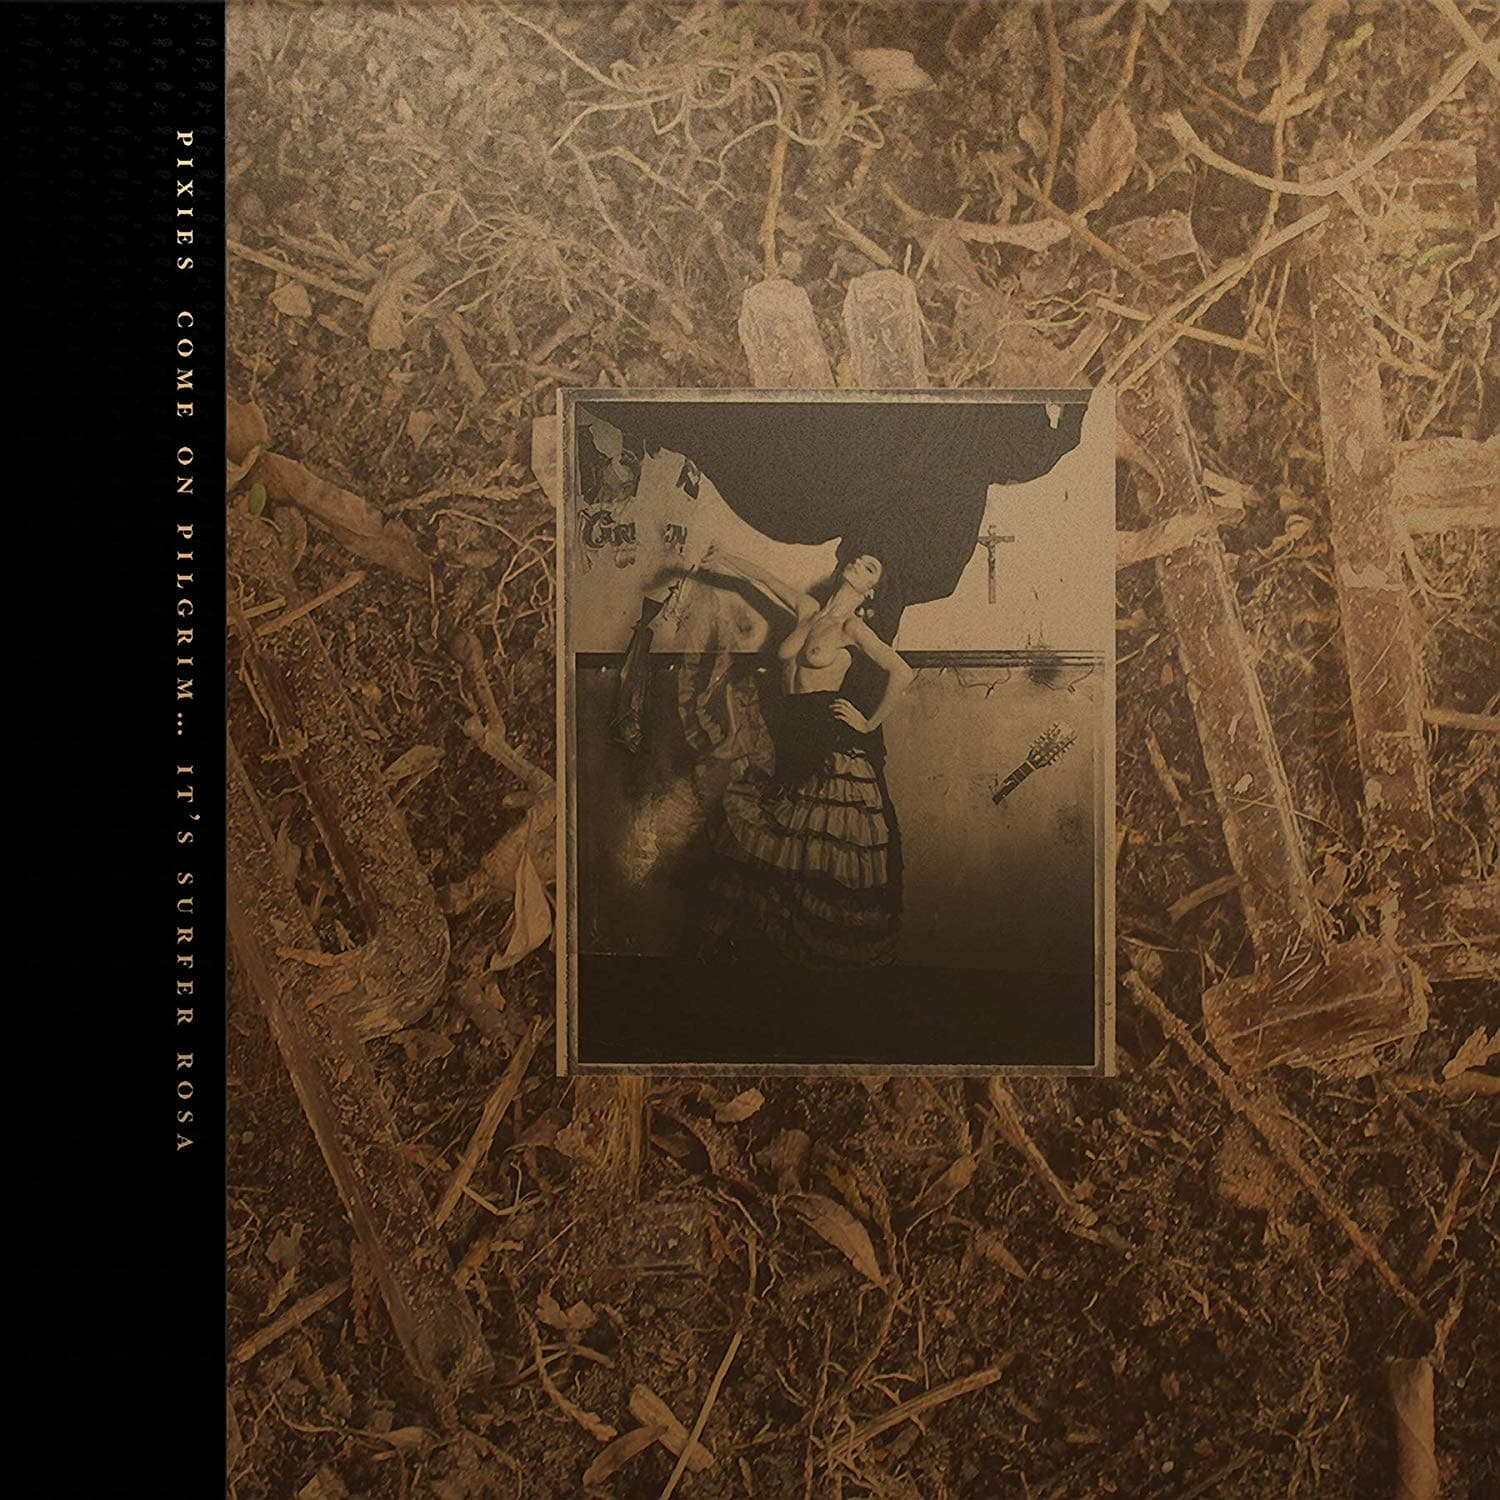 Pixies C Mon Pilgrim And It S Surfer Rosa 3lp 30th